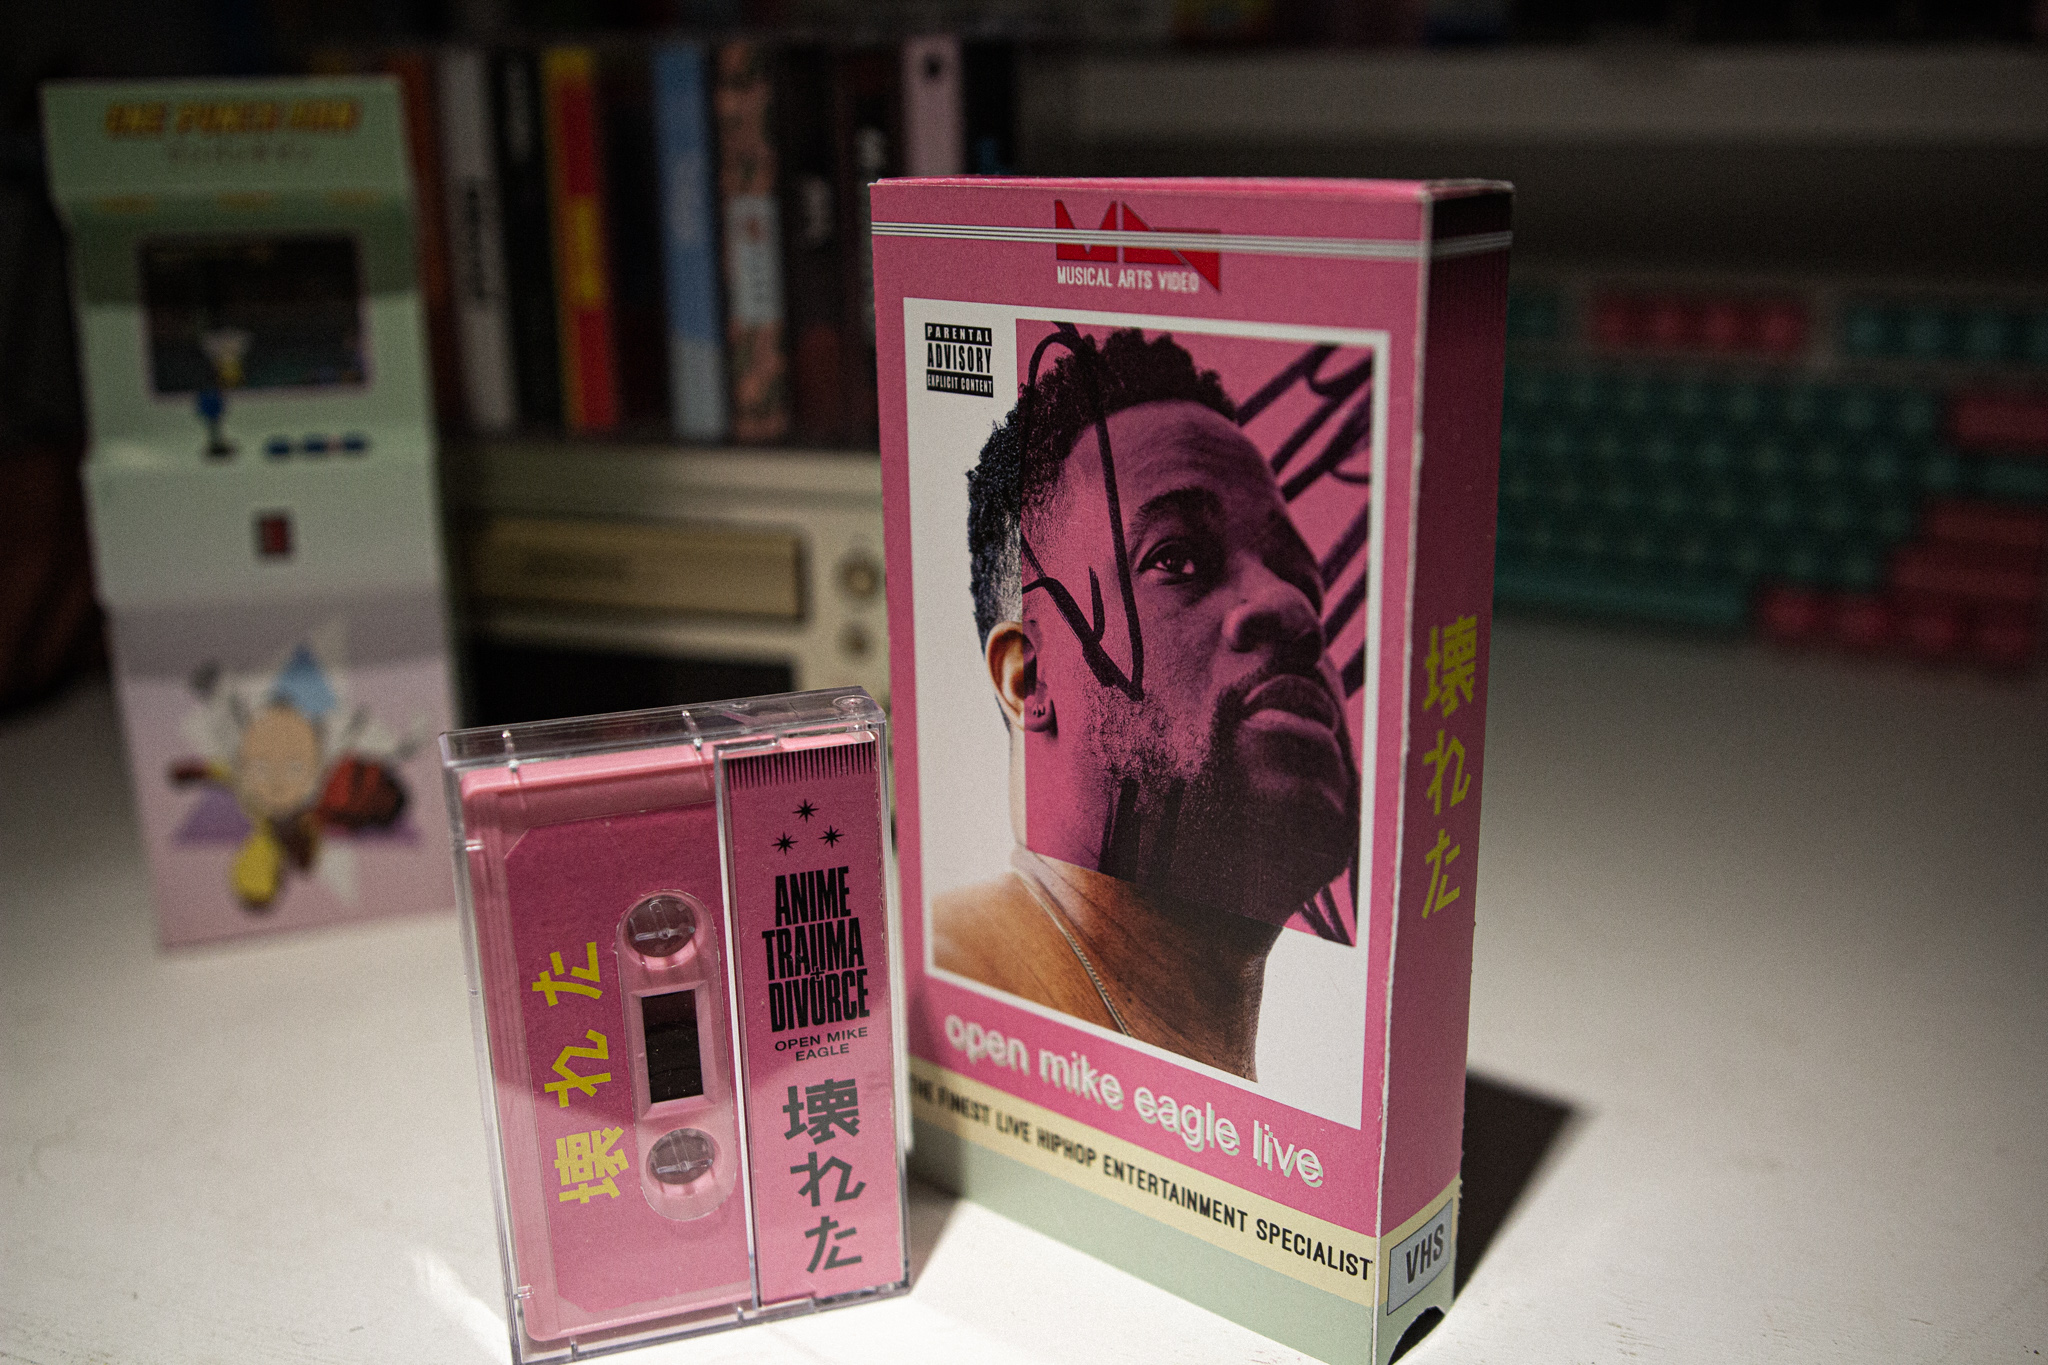 Open Mike Eagle VHS and Cassette